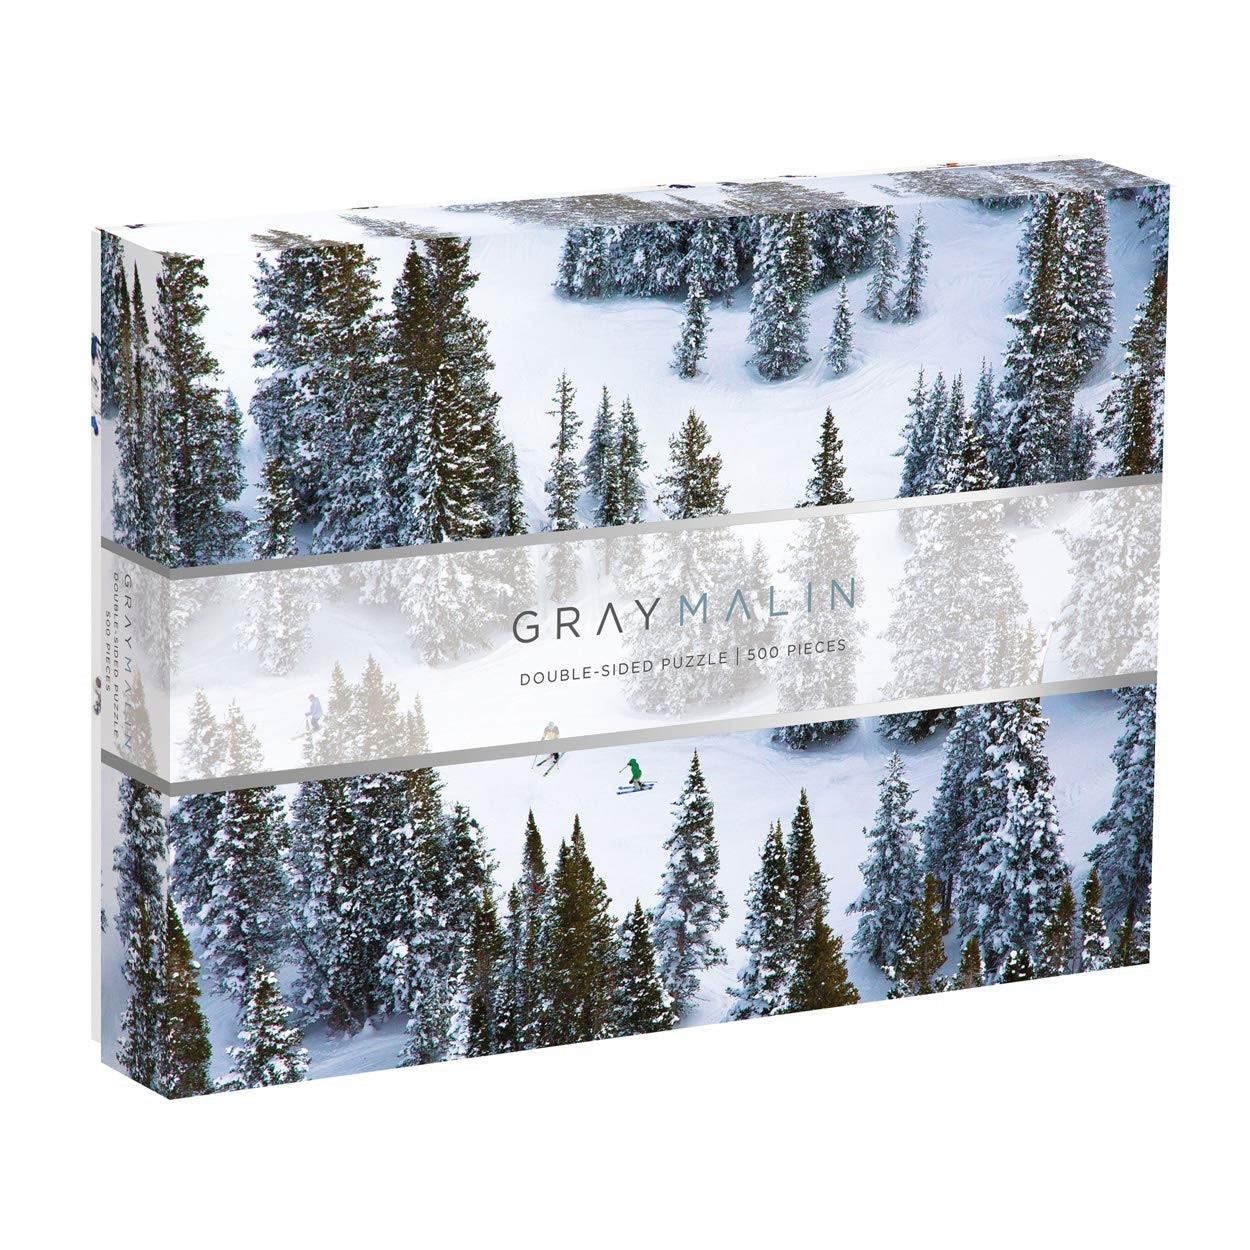 2019 holiday gift guide Gray Malin's 'The Snow' 500-Piece Double-Sided Jigsaw Puzzle